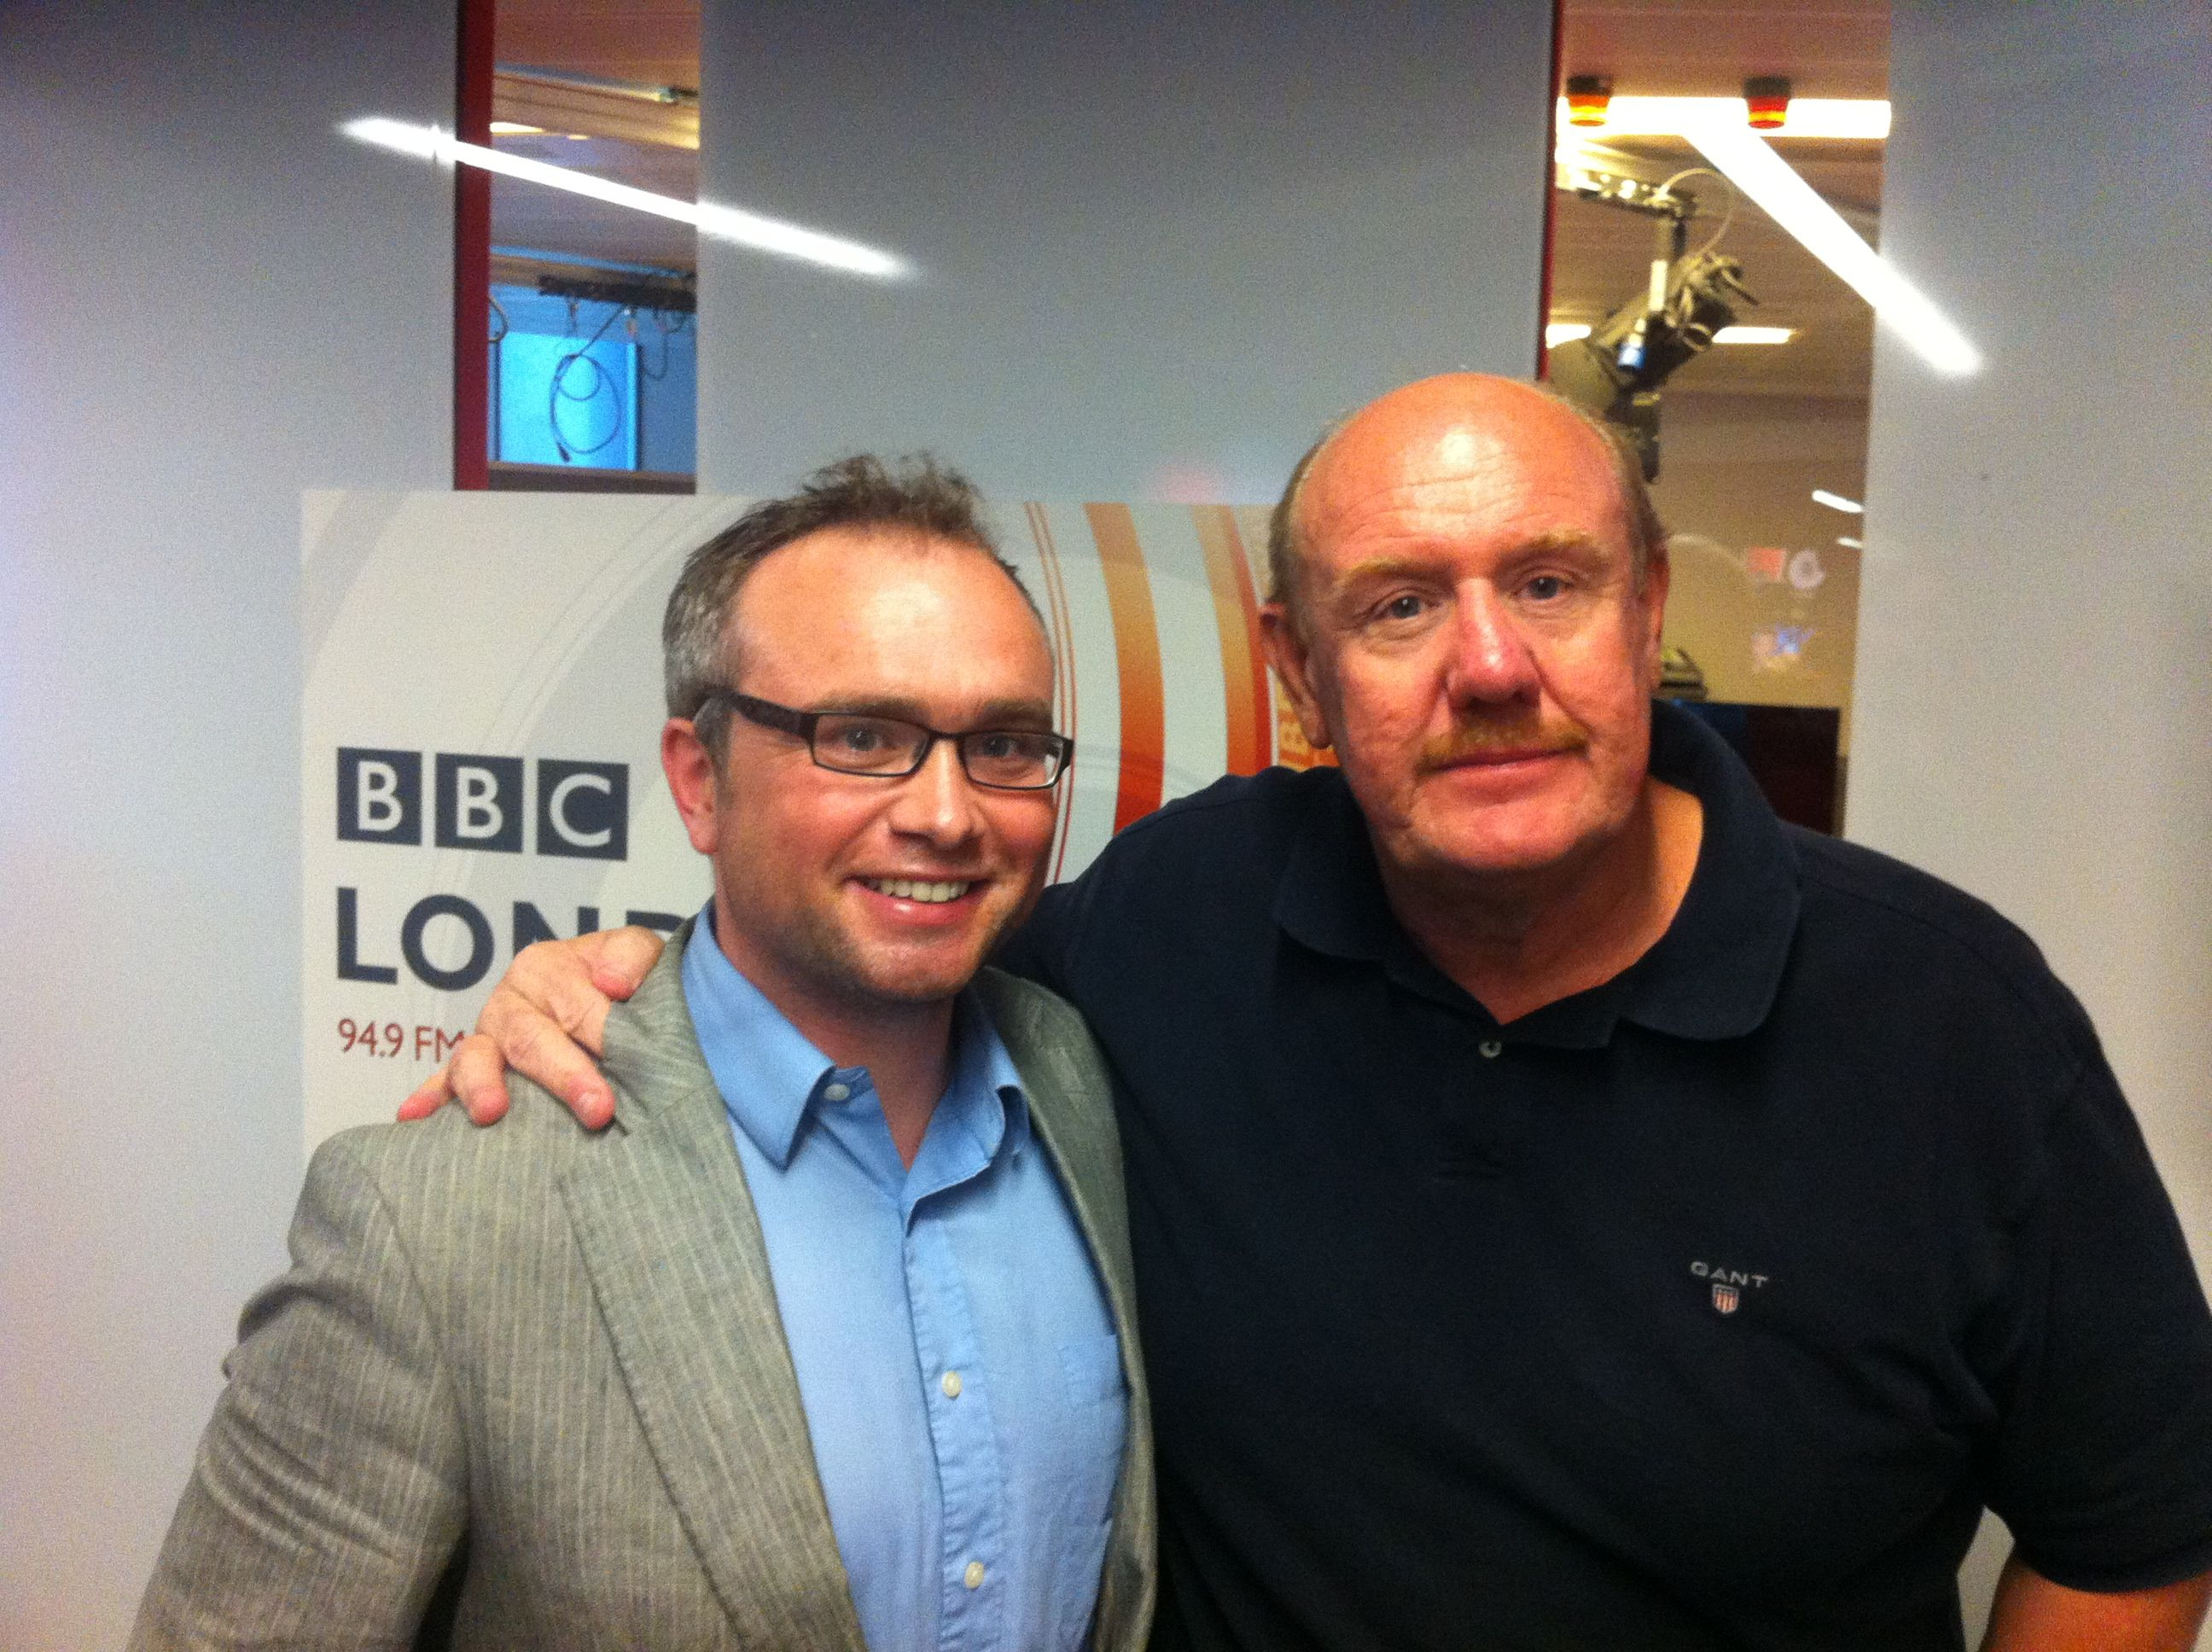 Brian Barwick With Andy Rowley At Bbc Radio London Bbc Radio London Bbc Radio Rowley